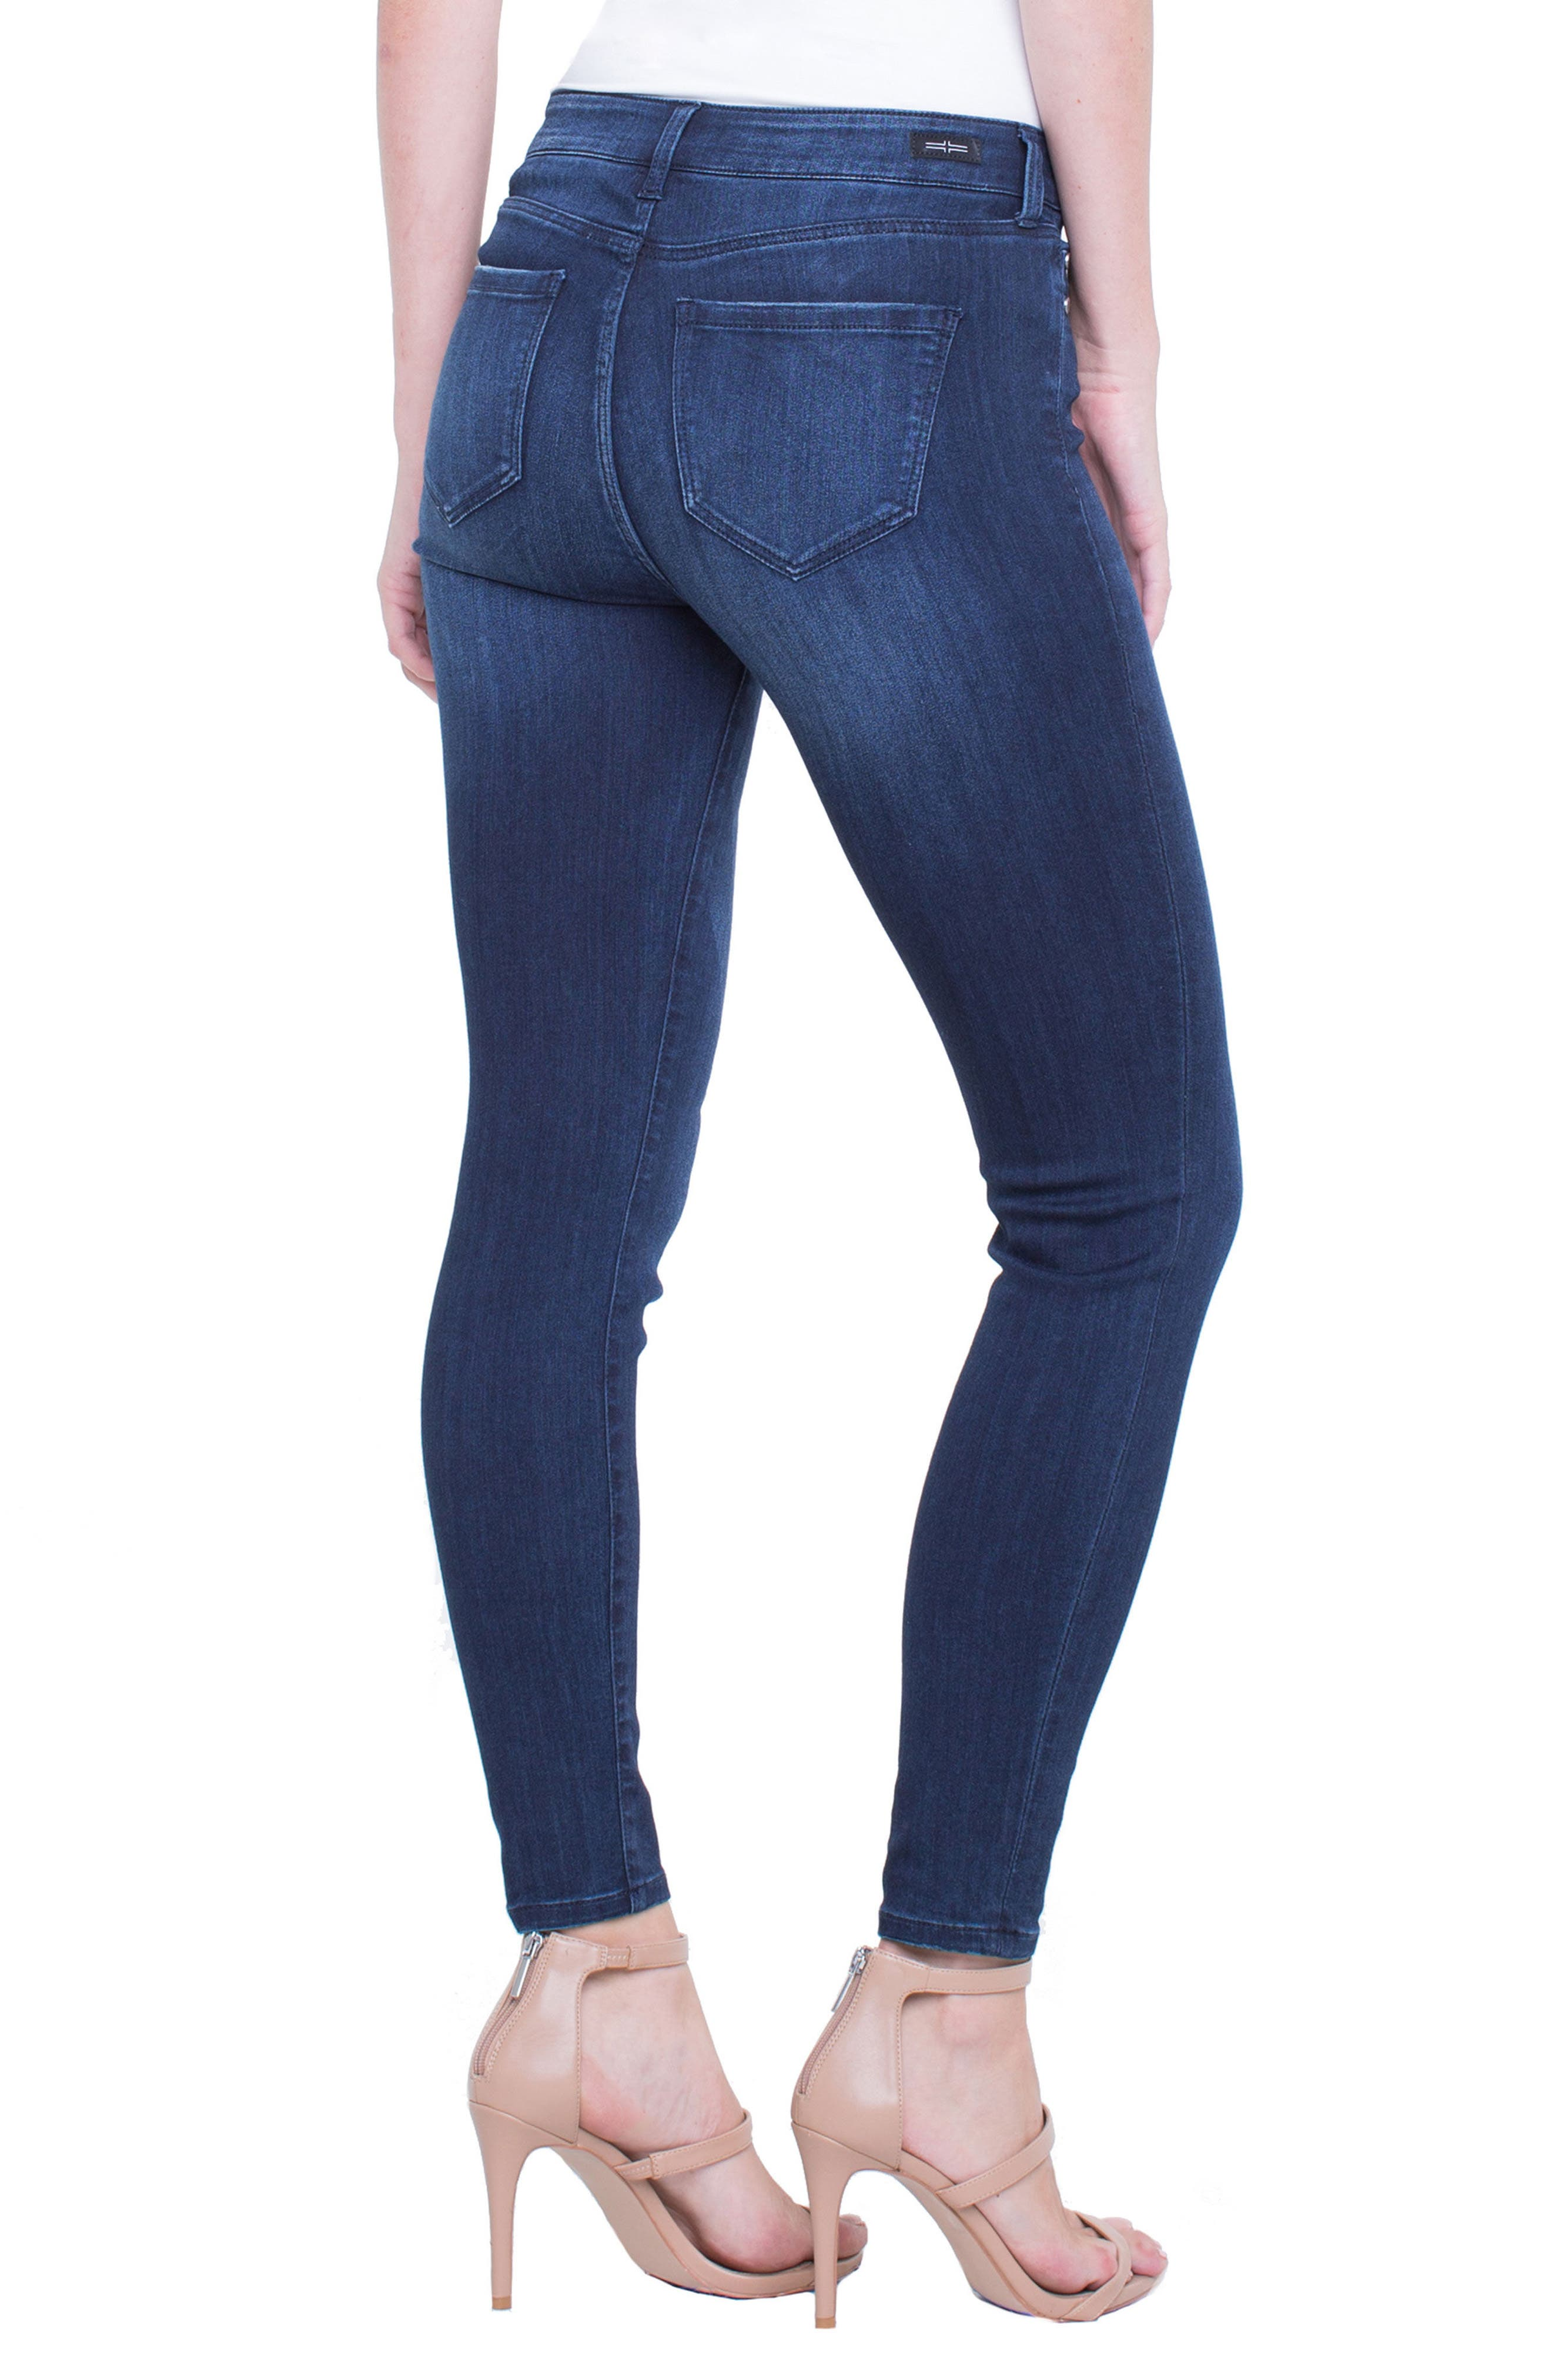 Jeans Company Penny Ankle Skinny Jeans,                             Alternate thumbnail 2, color,                             405